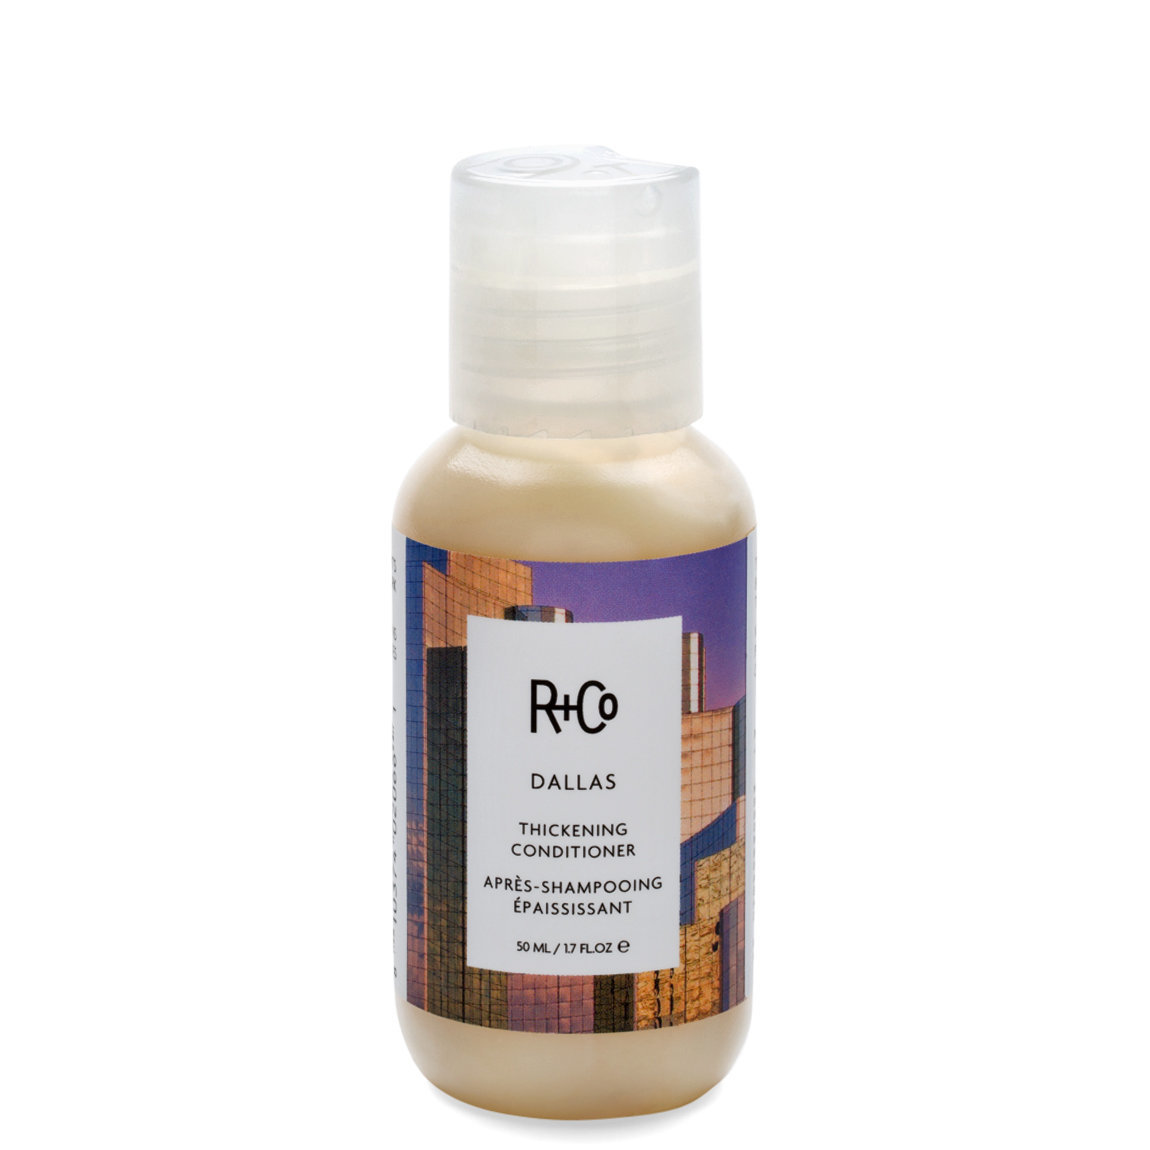 R+Co Dallas Thickening Conditioner  1.7 oz alternative view 1 - product swatch.